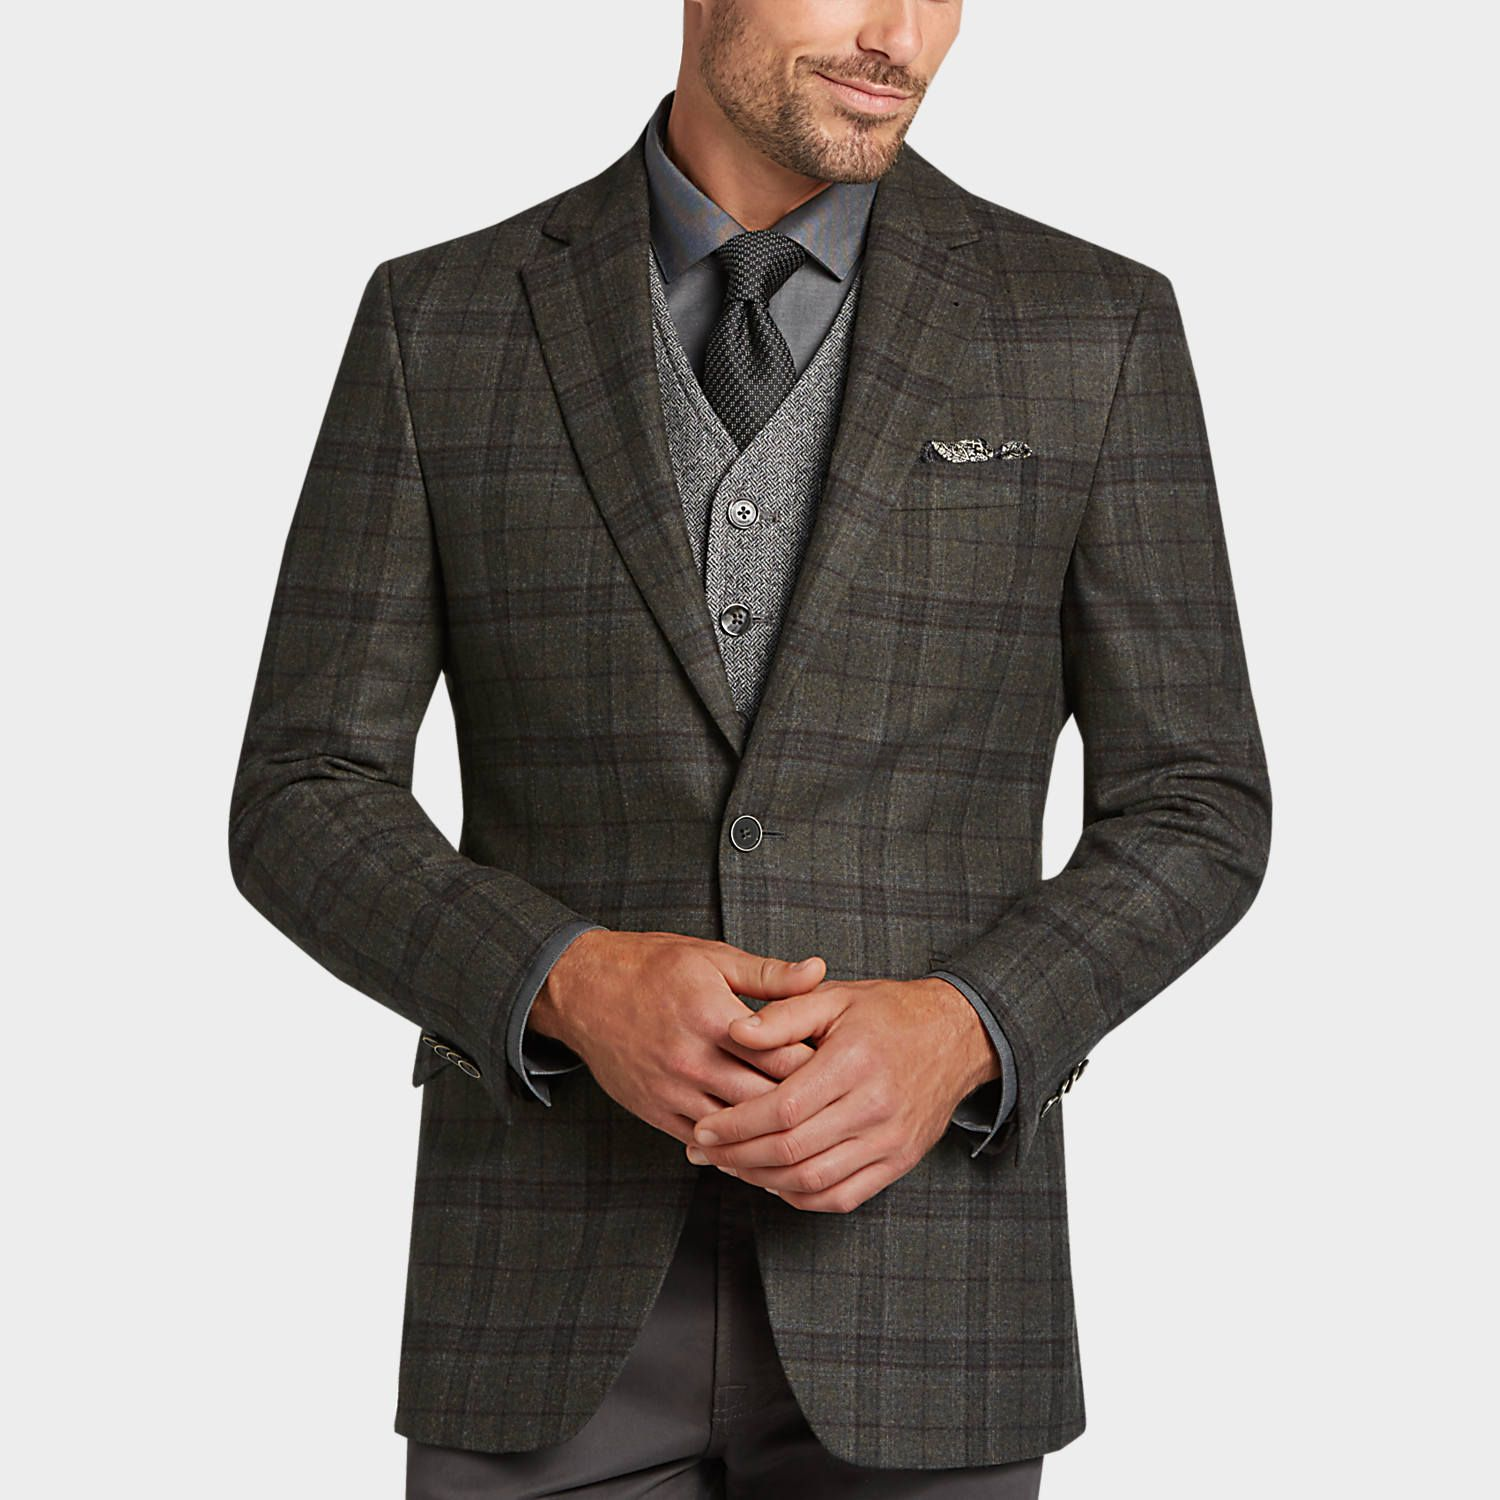 400 Buy a Joseph Abboud Tan Houndstooth Slim Fit Sport Coat and ...